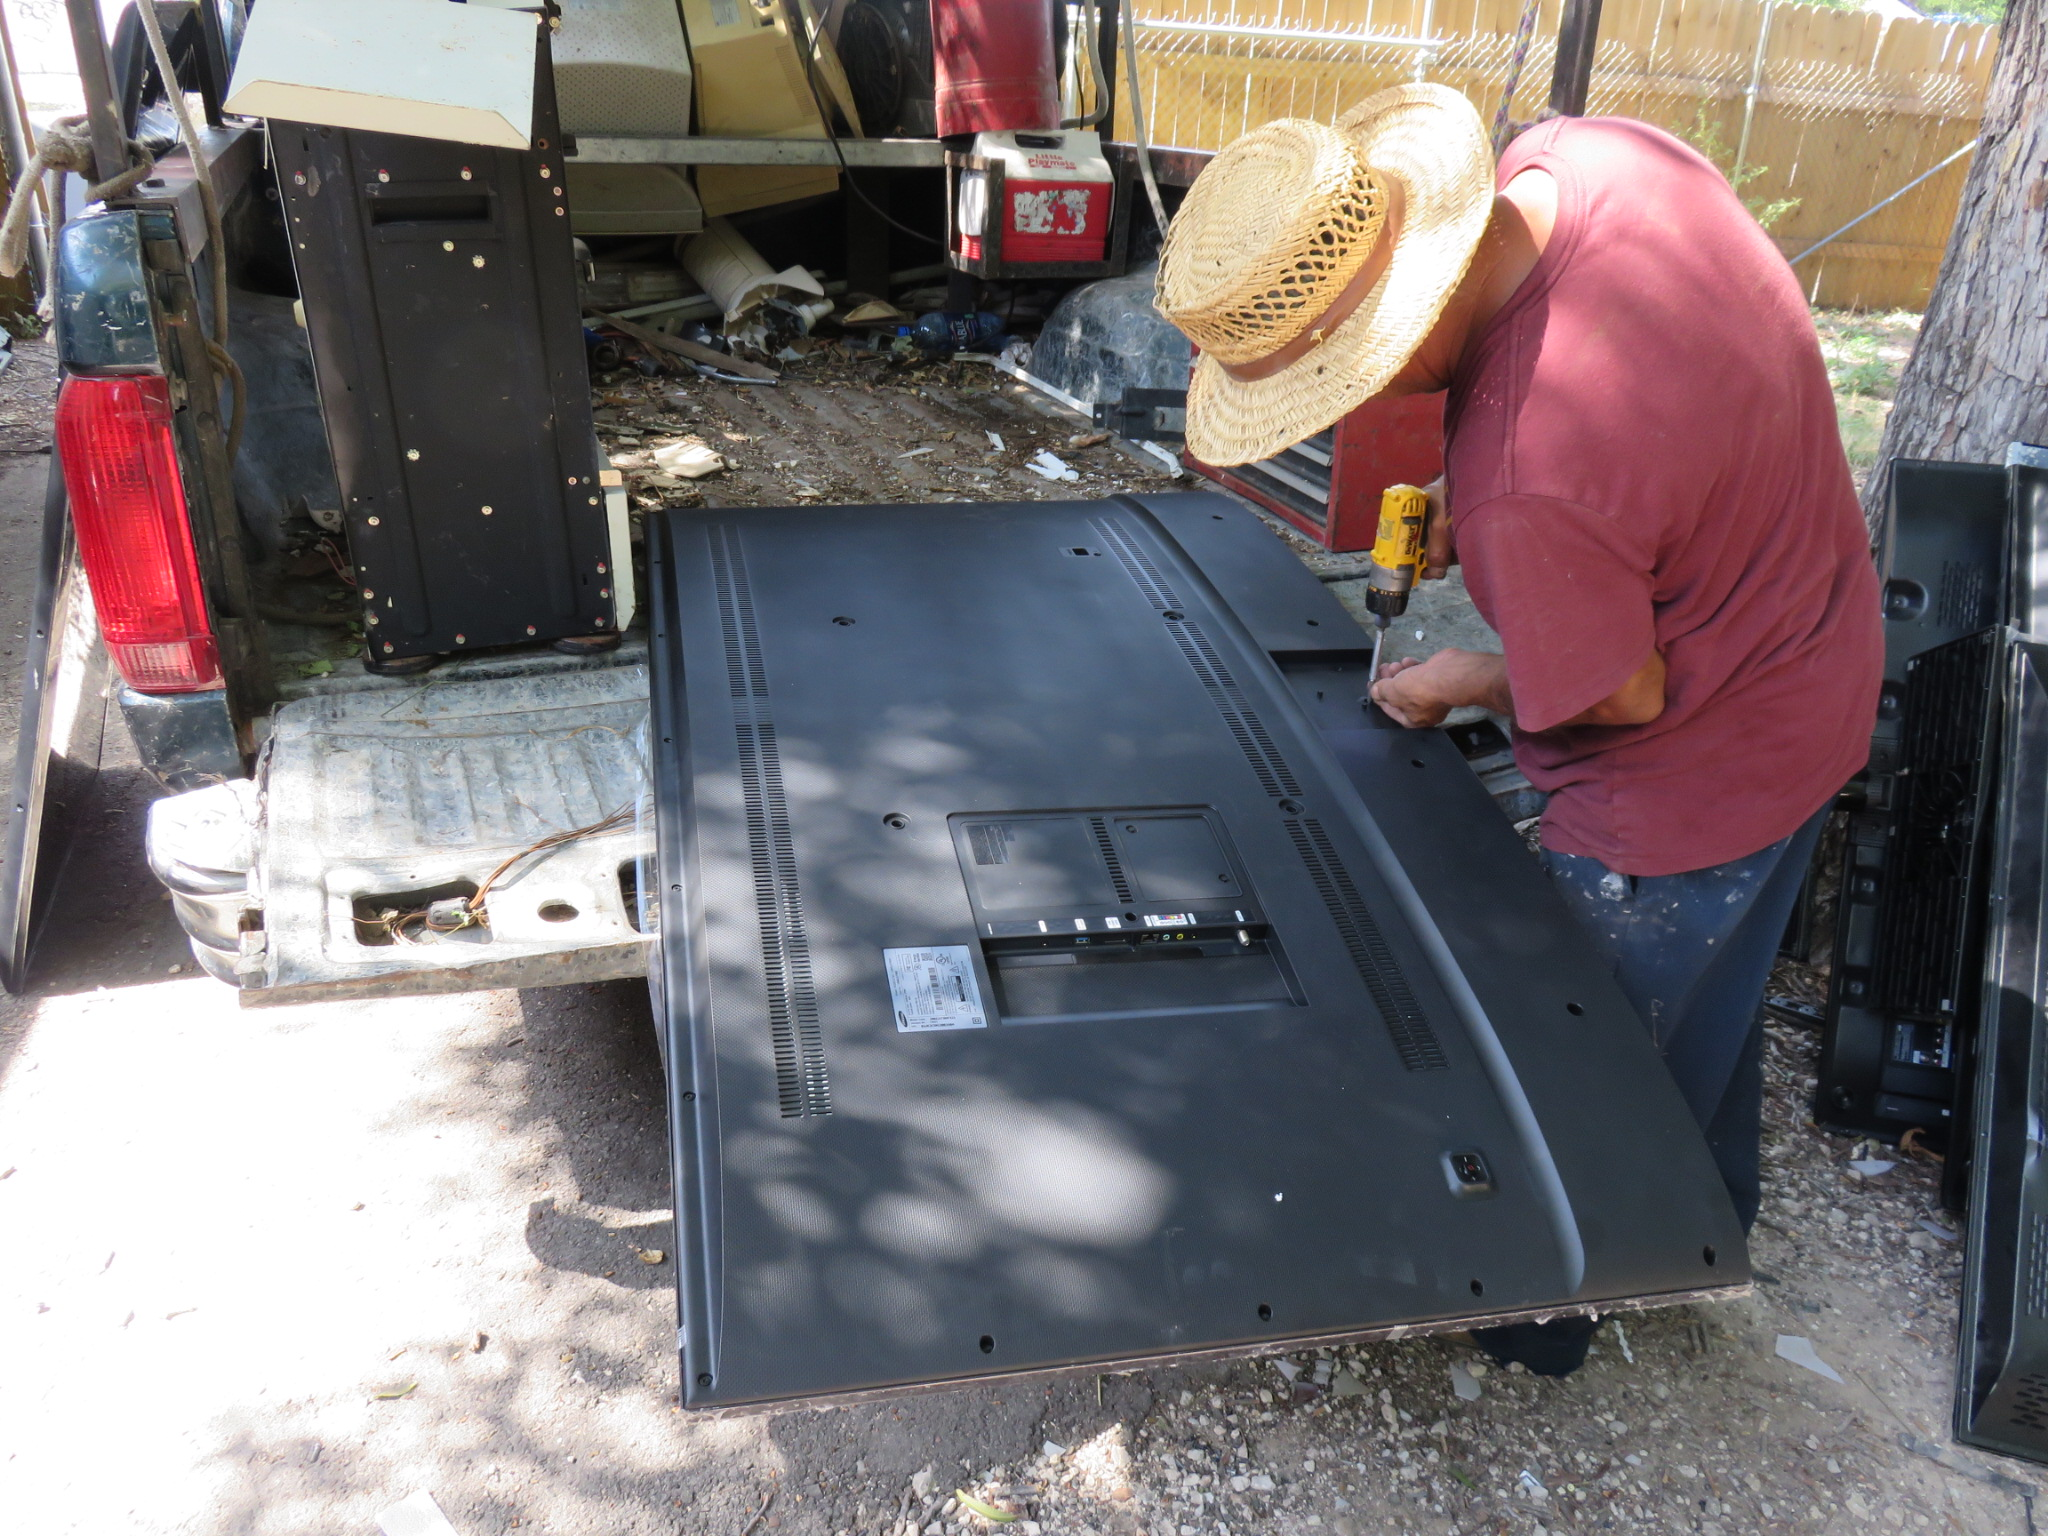 Richard taking a curved TV apart for recycling